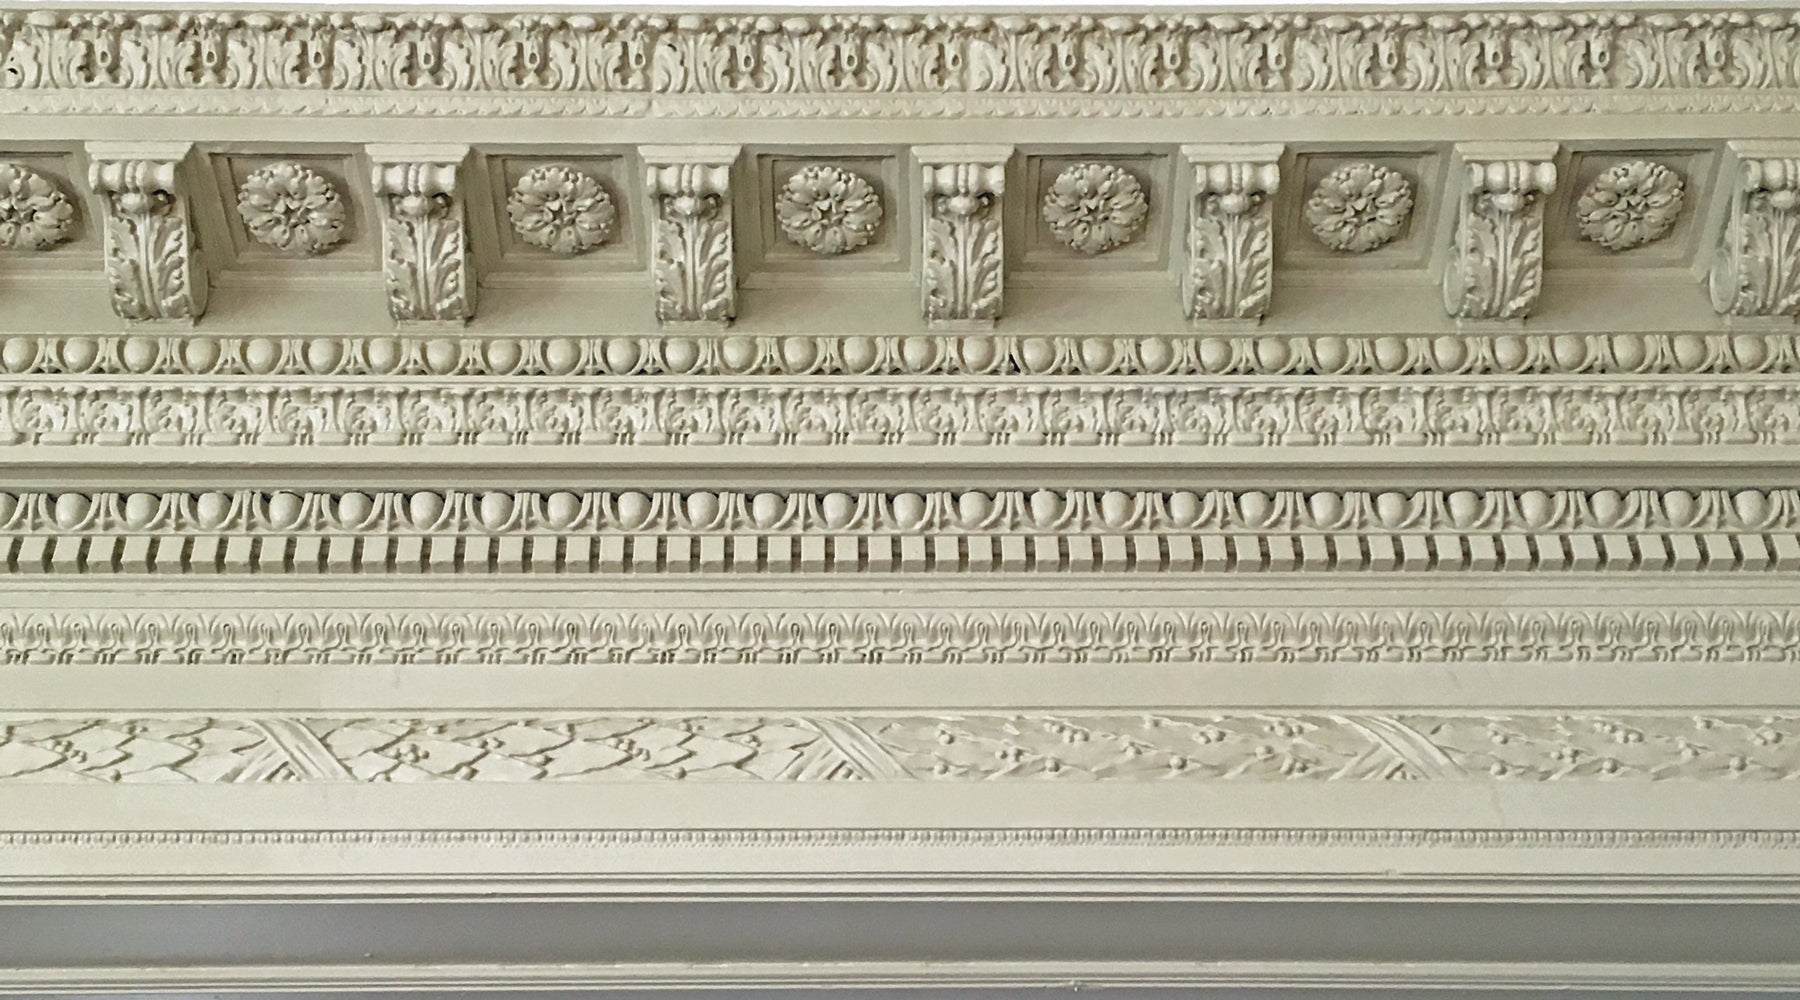 plaster decorative crown molding design example from brockwell incorporated